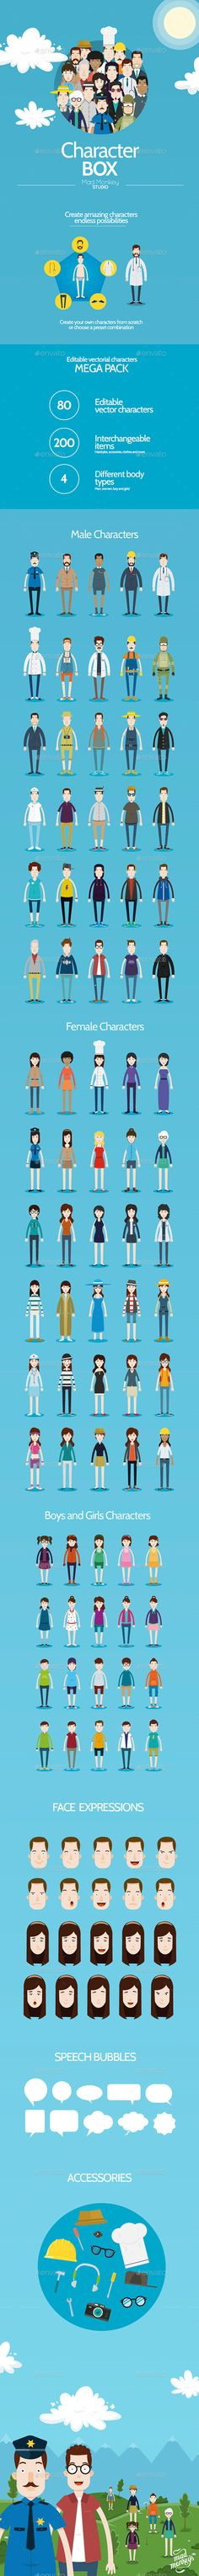 Character Box Vector Design Template- People Characters Template Vector EPS, Ai Illustrator. Download here: https://graphicriver.net/item/character-box/9647035?ref=yinkira